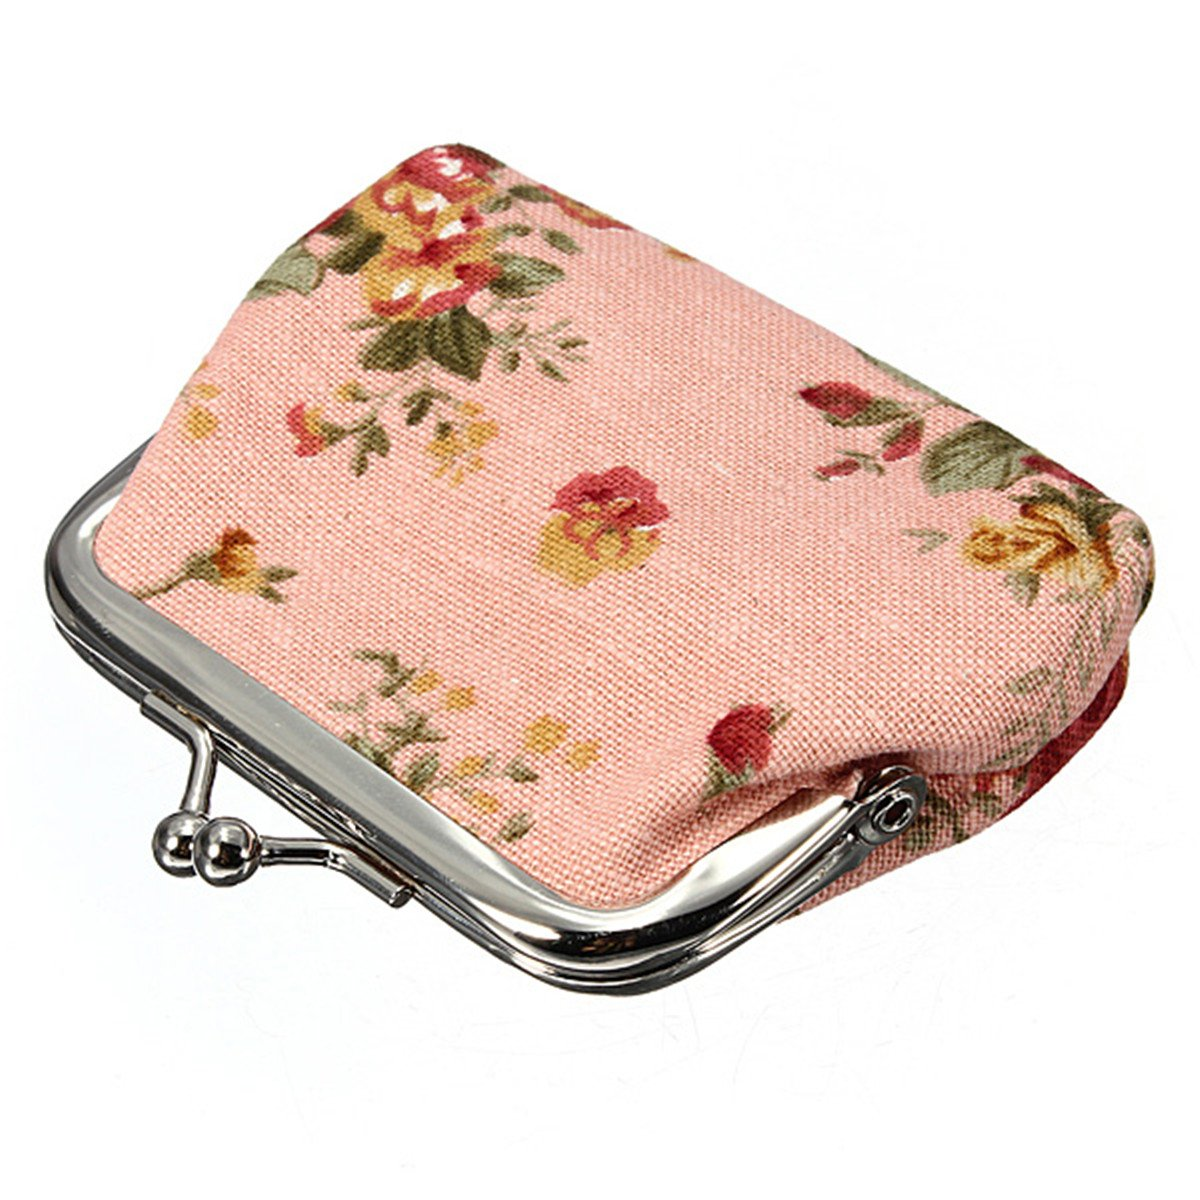 Women/girls Roses Floral Fabric Clip Mini Small Coin Pocket Purse Bag Clutch